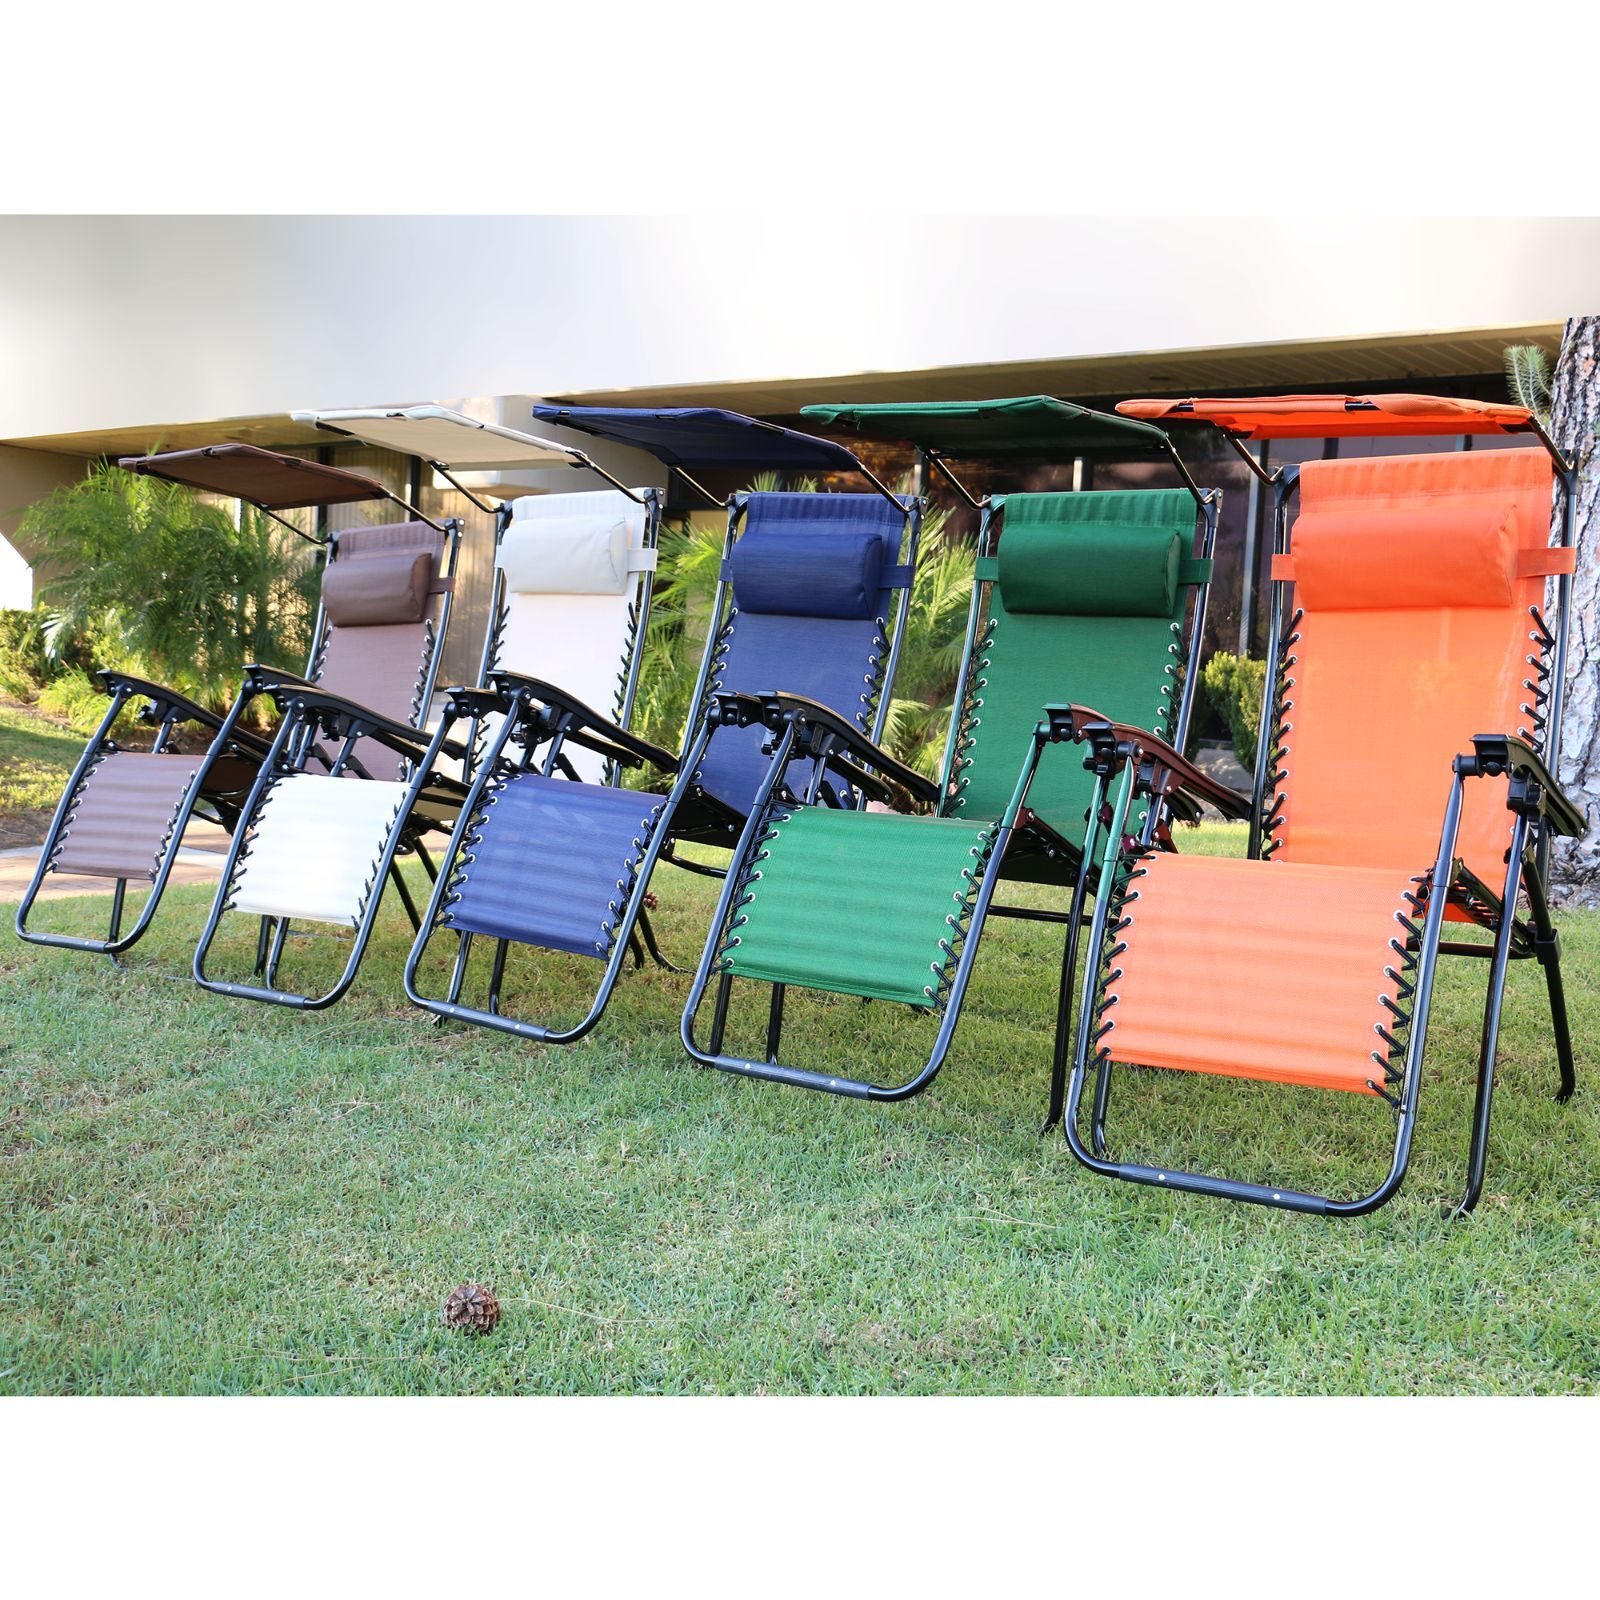 Patio Lounge Chair With Sunshade And Pillow Pool Beach Folding Chairs 1 Pair